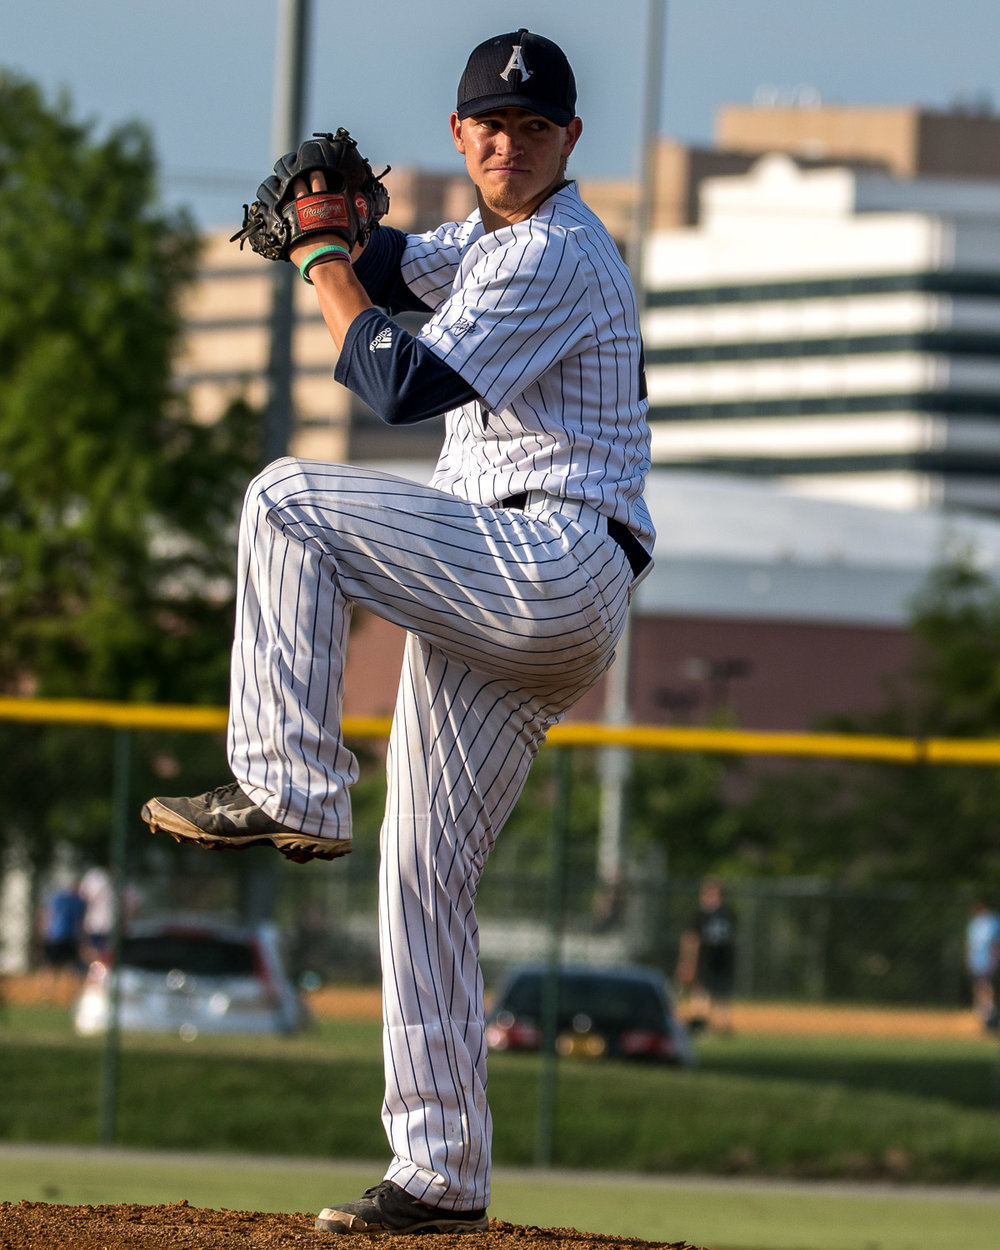 20160707 - DC Grays vs Aces-2253.jpg